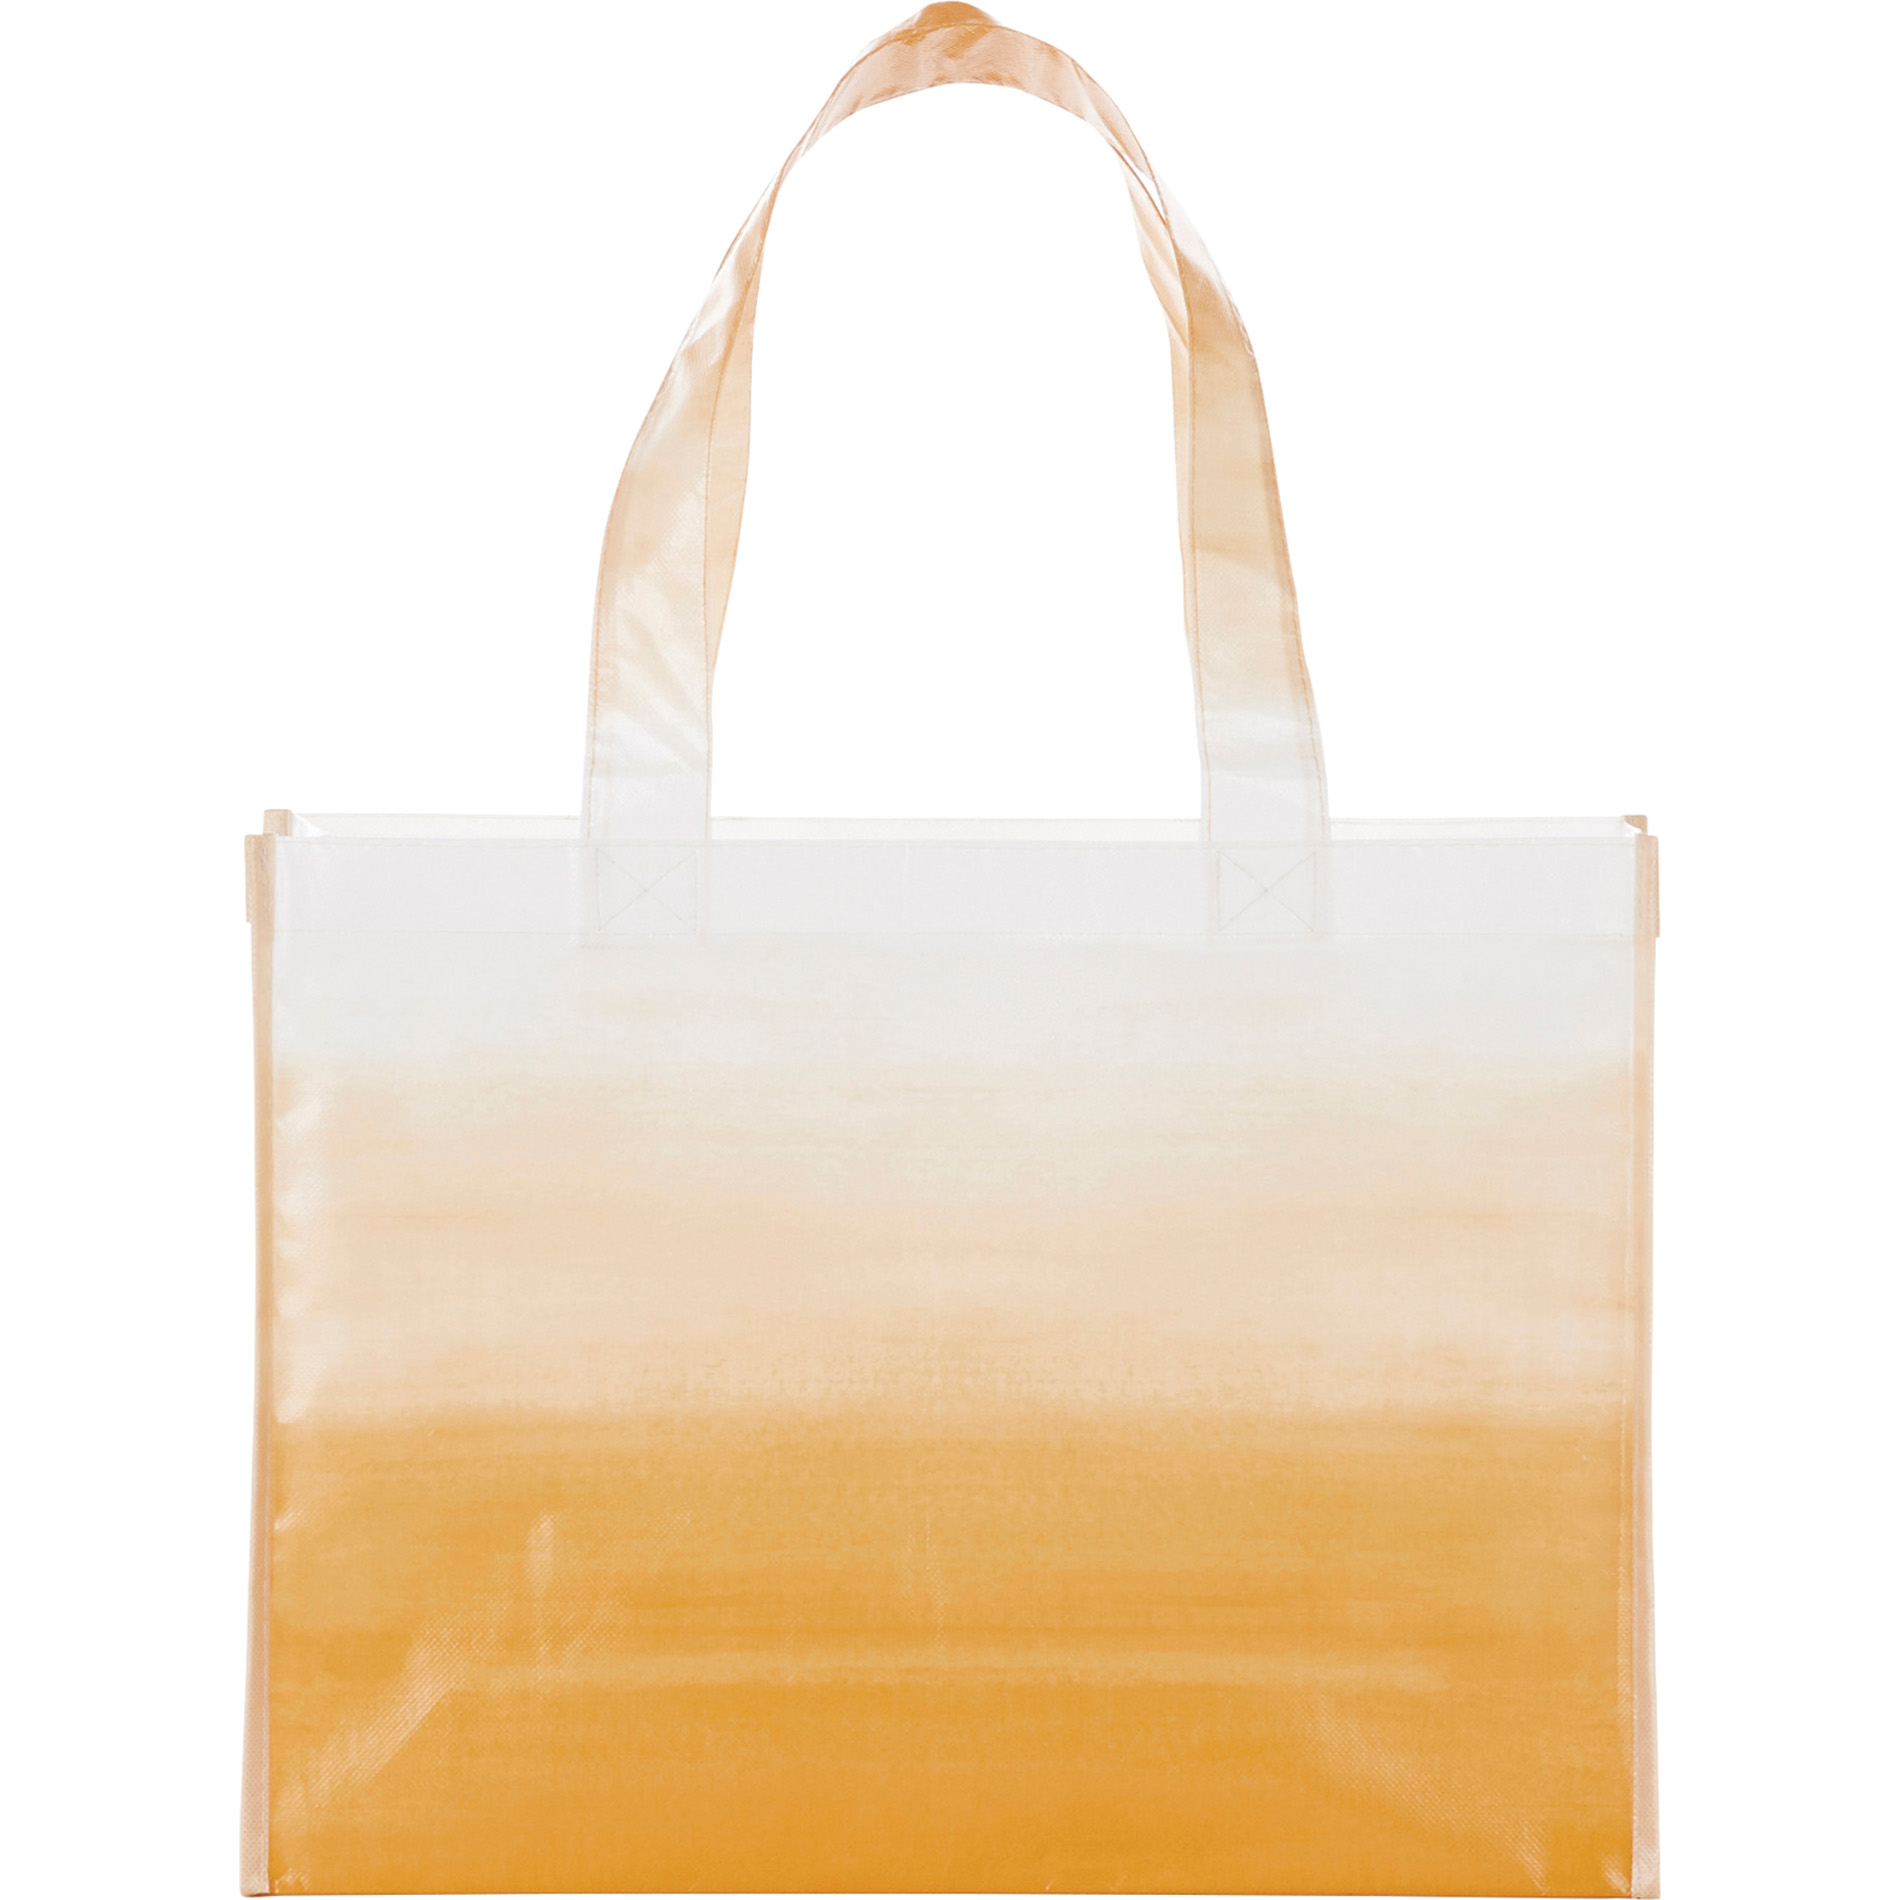 LEEDS 2160-92 - Watercolor Laminated Shopper Tote